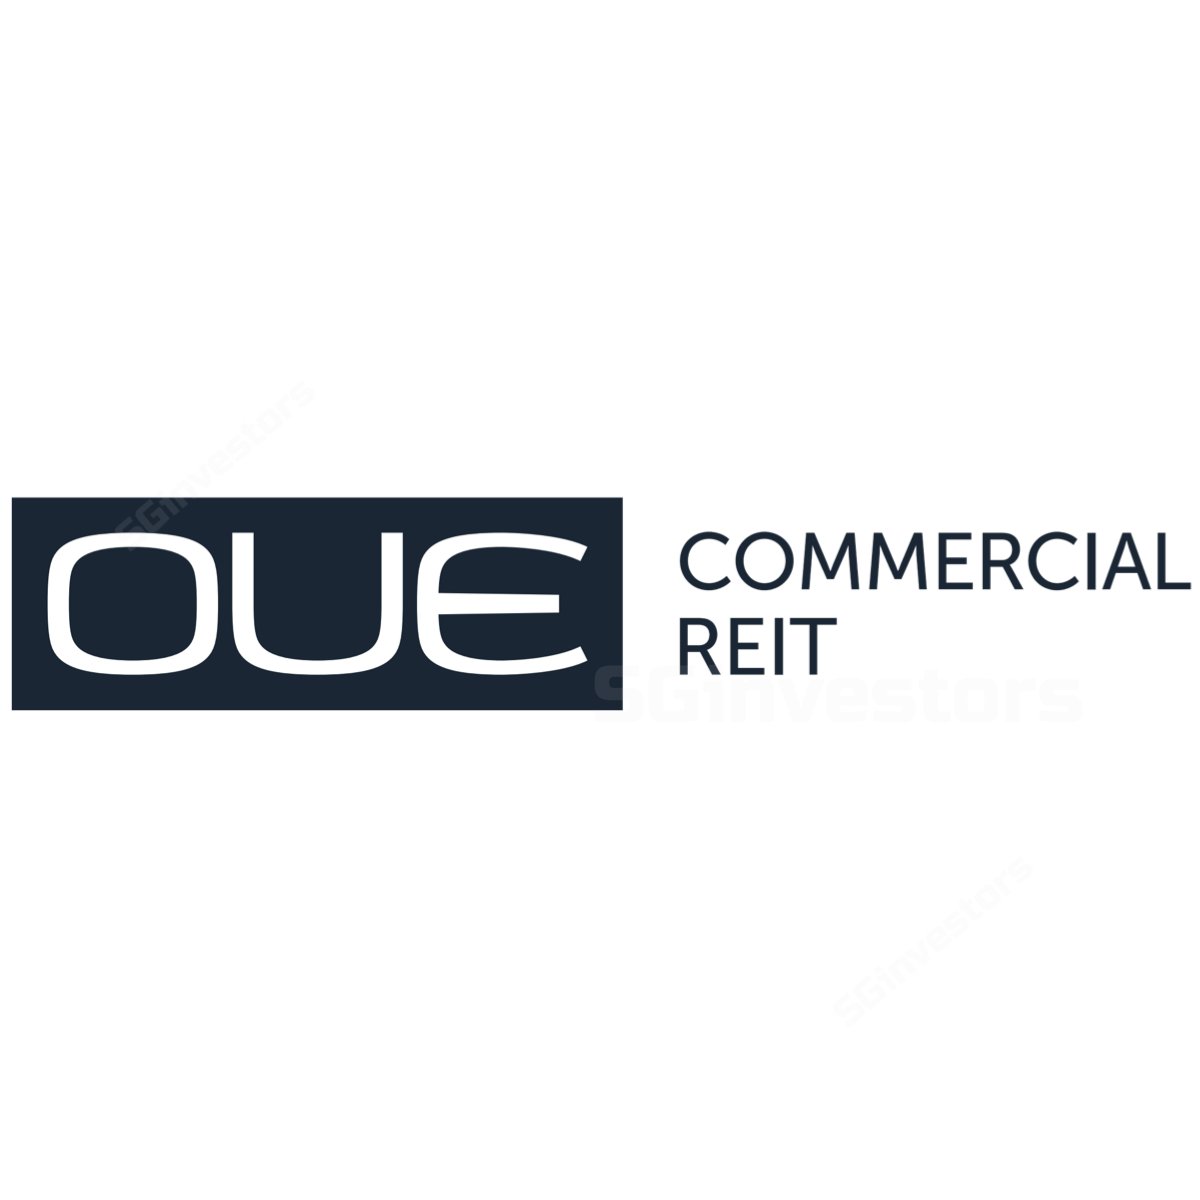 OUE Commercial REIT - OCBC Investment 2017-03-10: Placement of new shares to pare down gearing